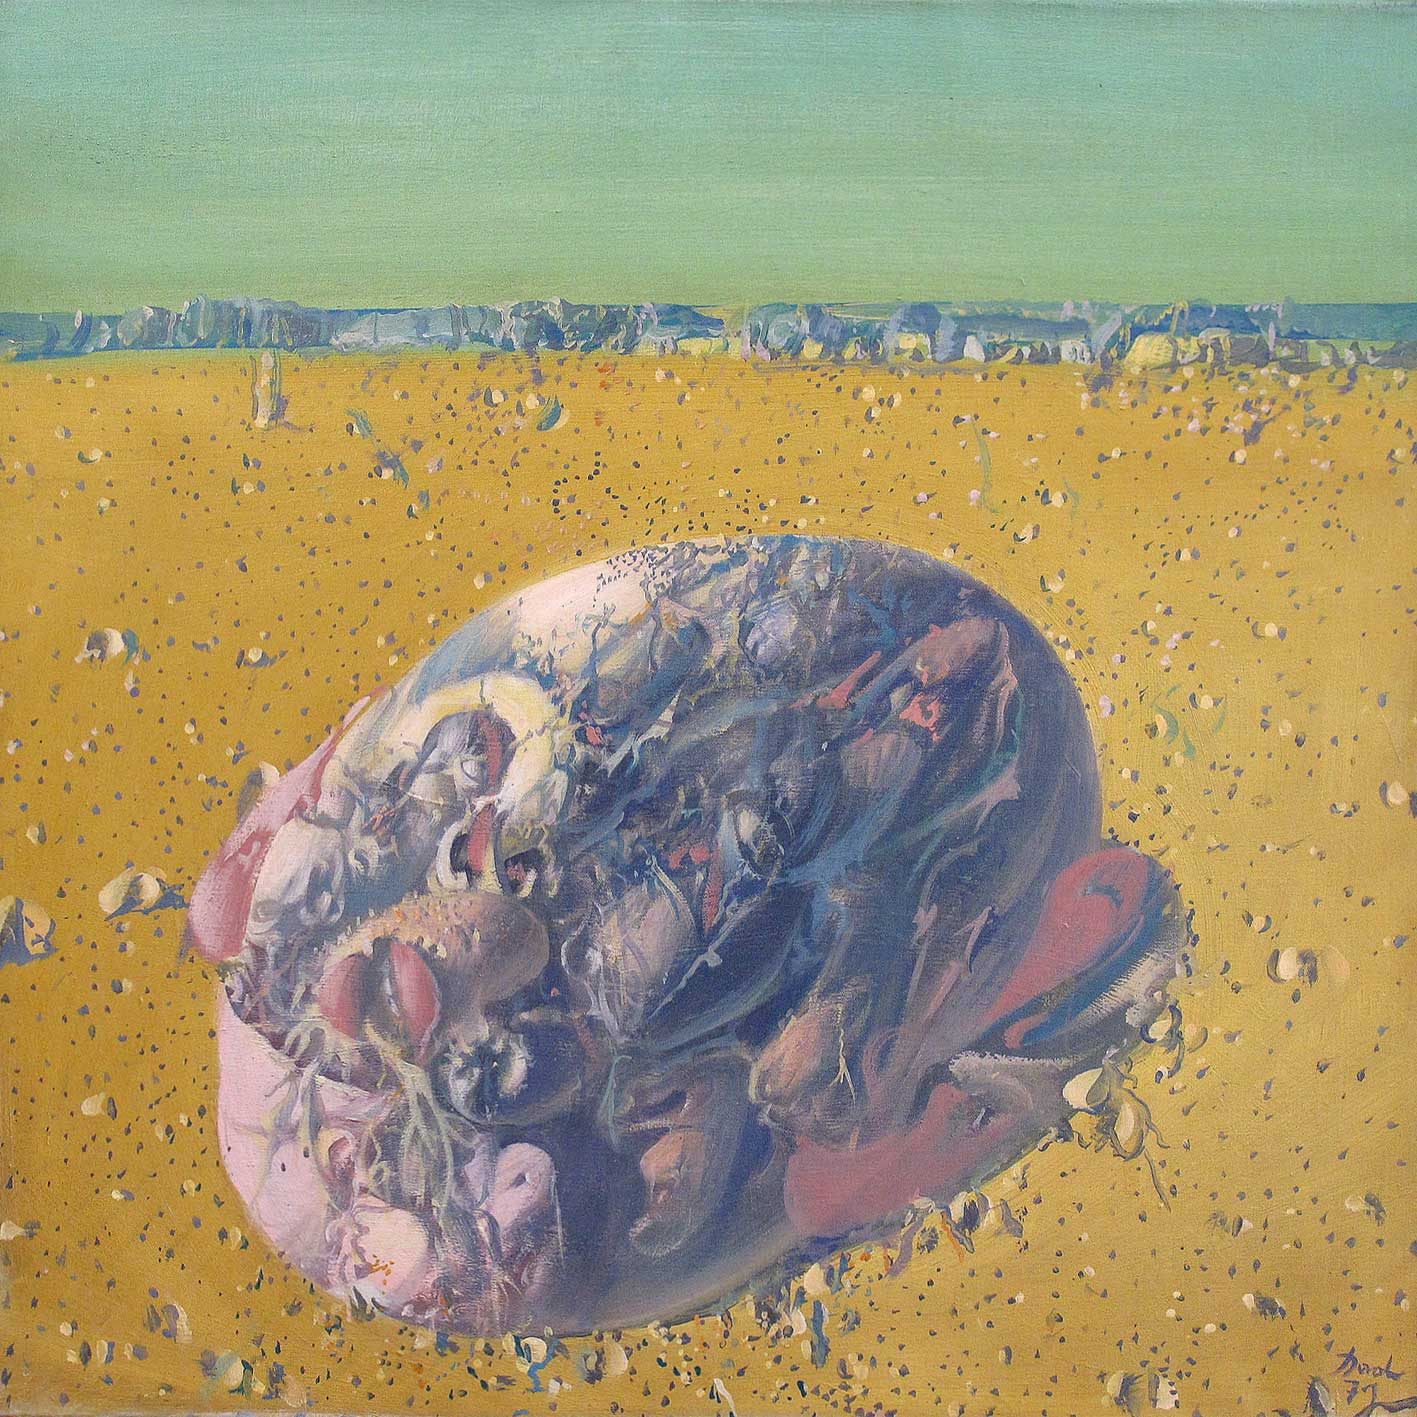 Dado's painting: The Gallery of Ancestors XXI, 1971